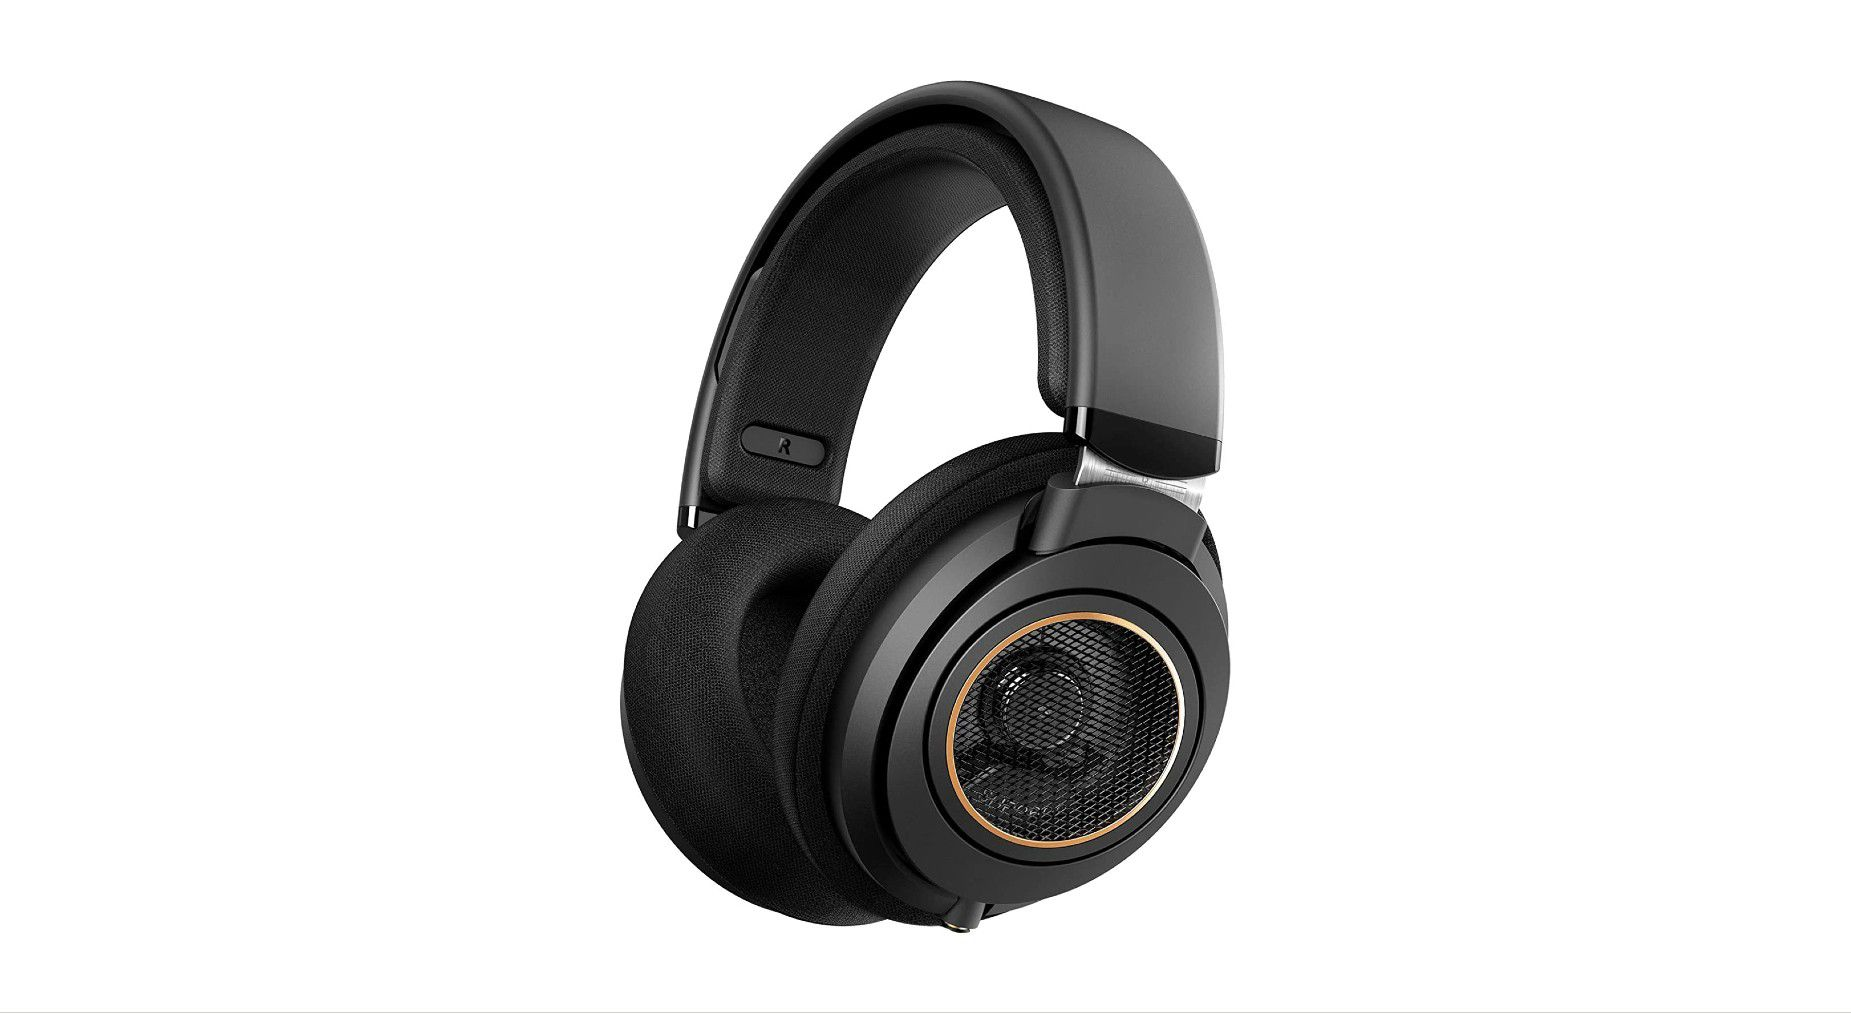 Best MSI Headphones BlackFriday Deals